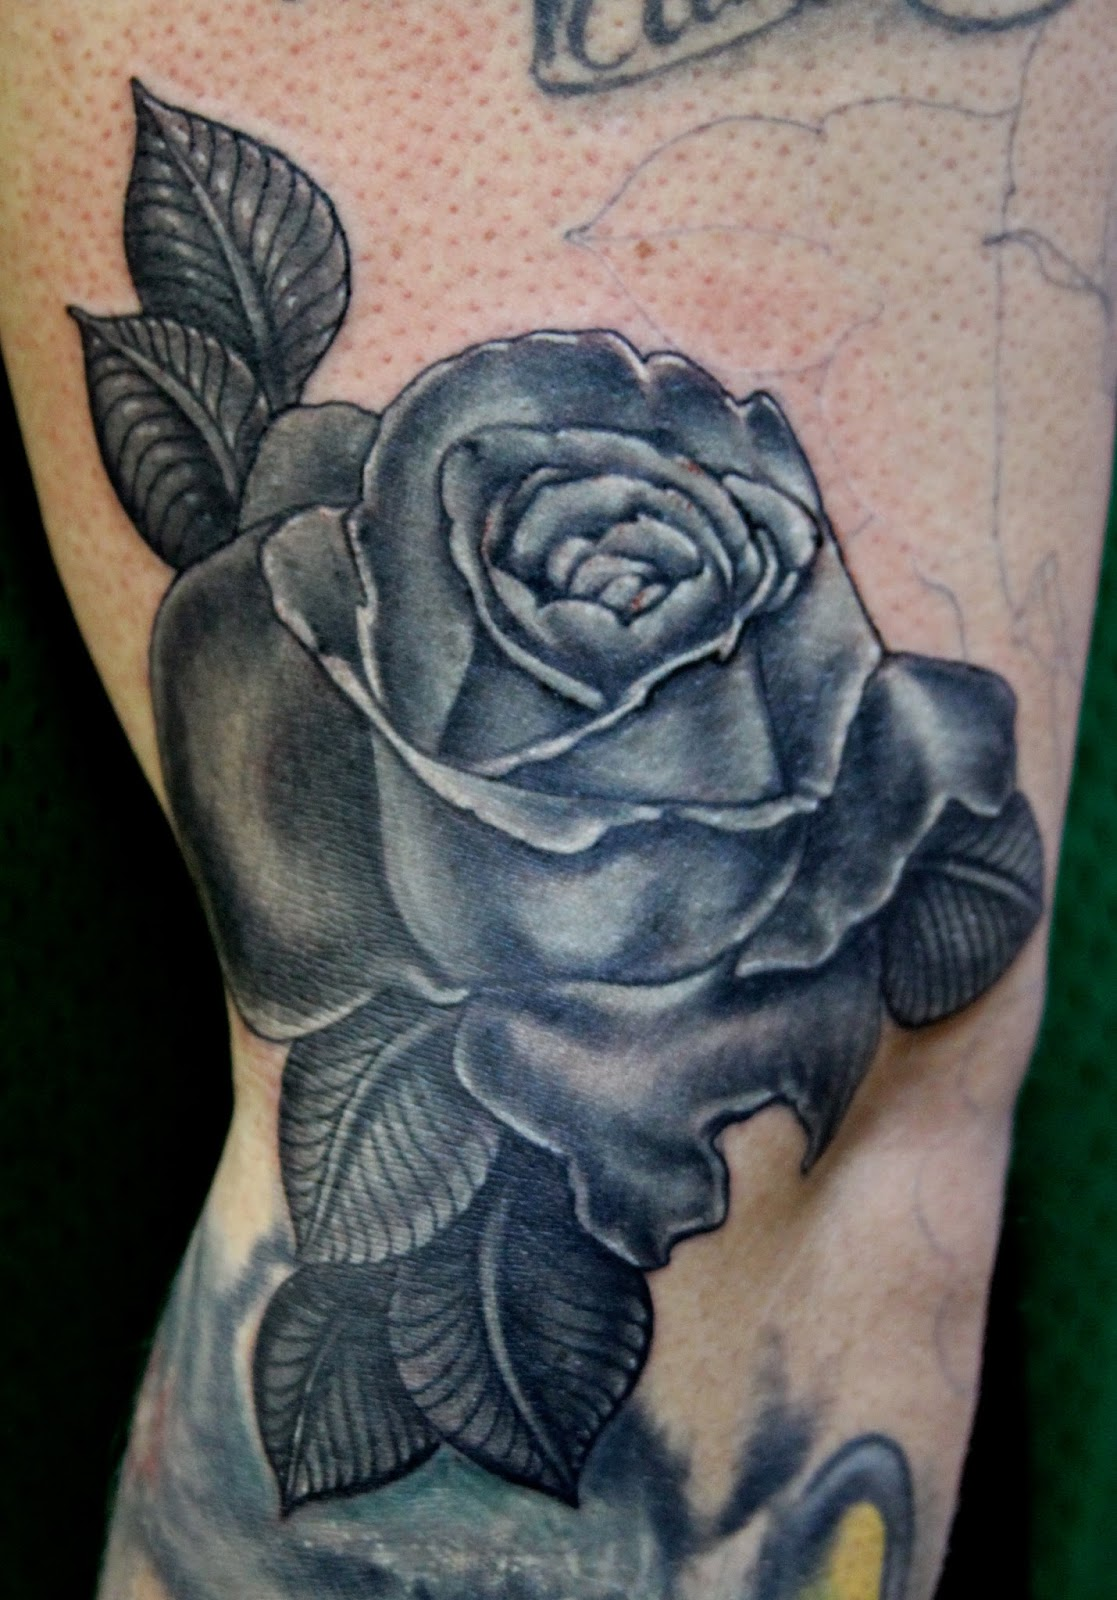 shanninscrapandcrap: Black Rose Tattoo